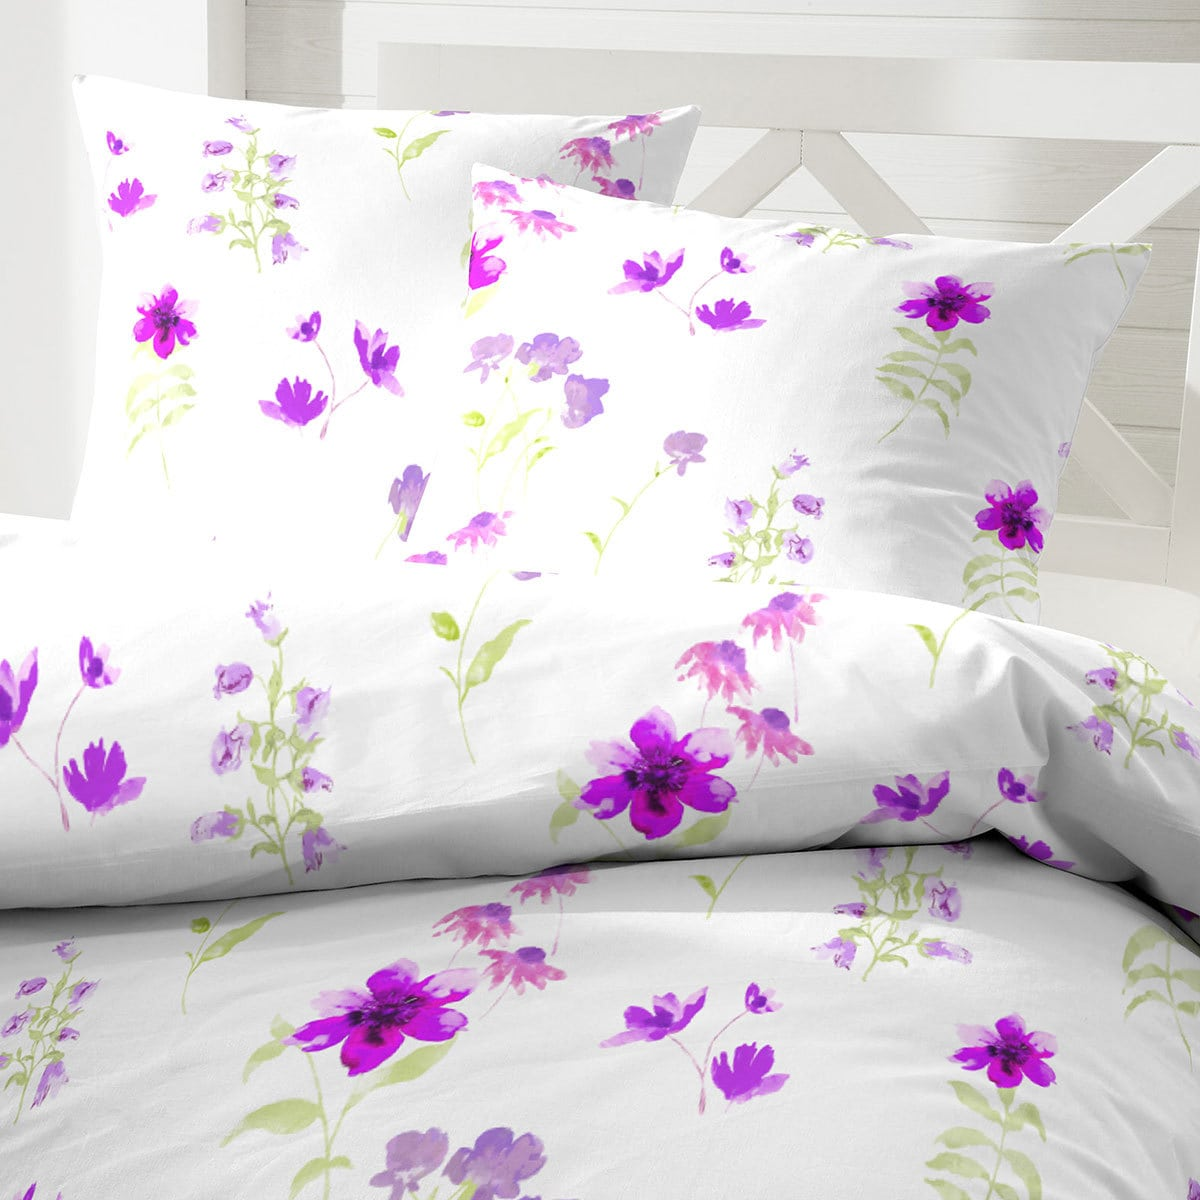 hahn mikrofaser seersucker bettw sche flowers lila g nstig online kaufen bei bettwaren shop. Black Bedroom Furniture Sets. Home Design Ideas